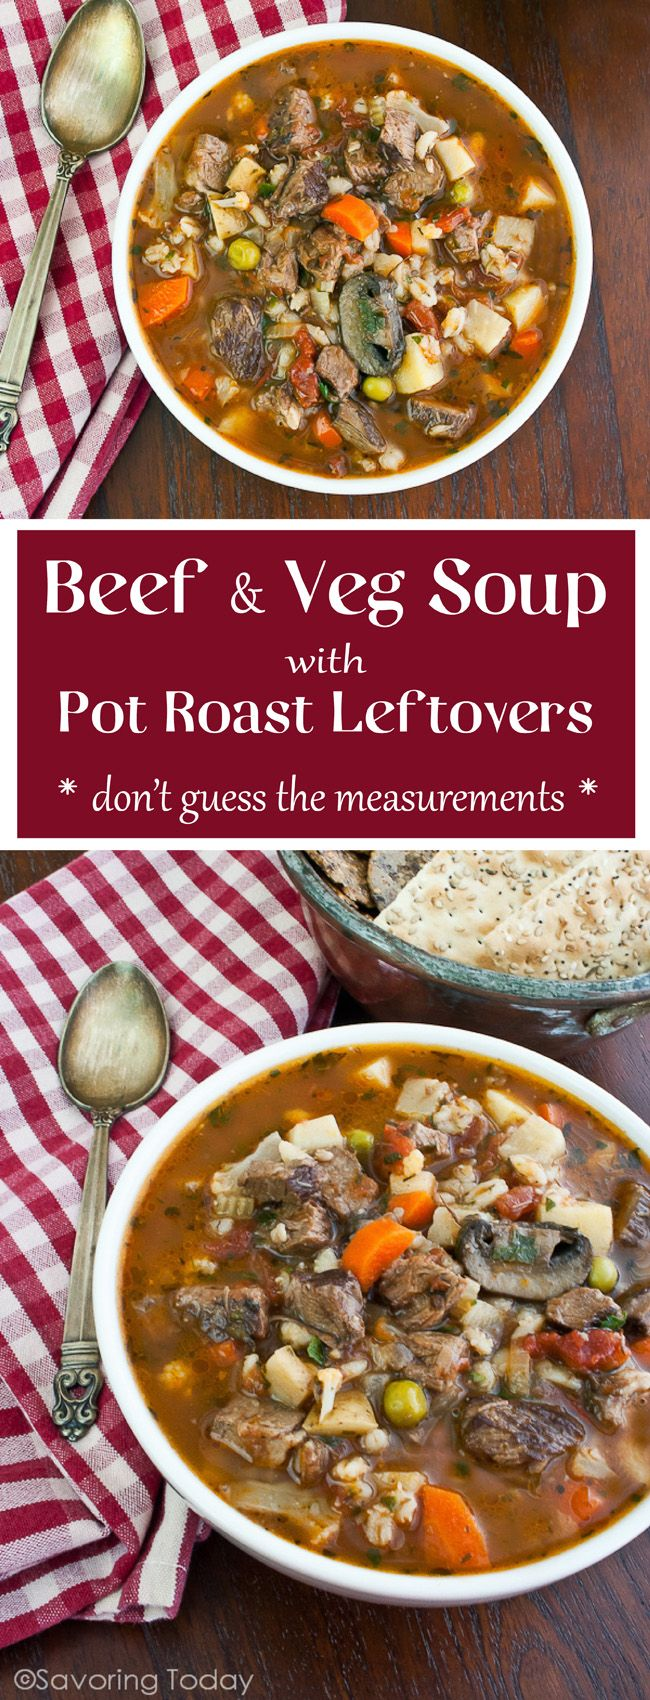 Don't guess! Use these measurements to easily make this Roast Beef & Vegetable Soup recipe with pot roast leftovers.